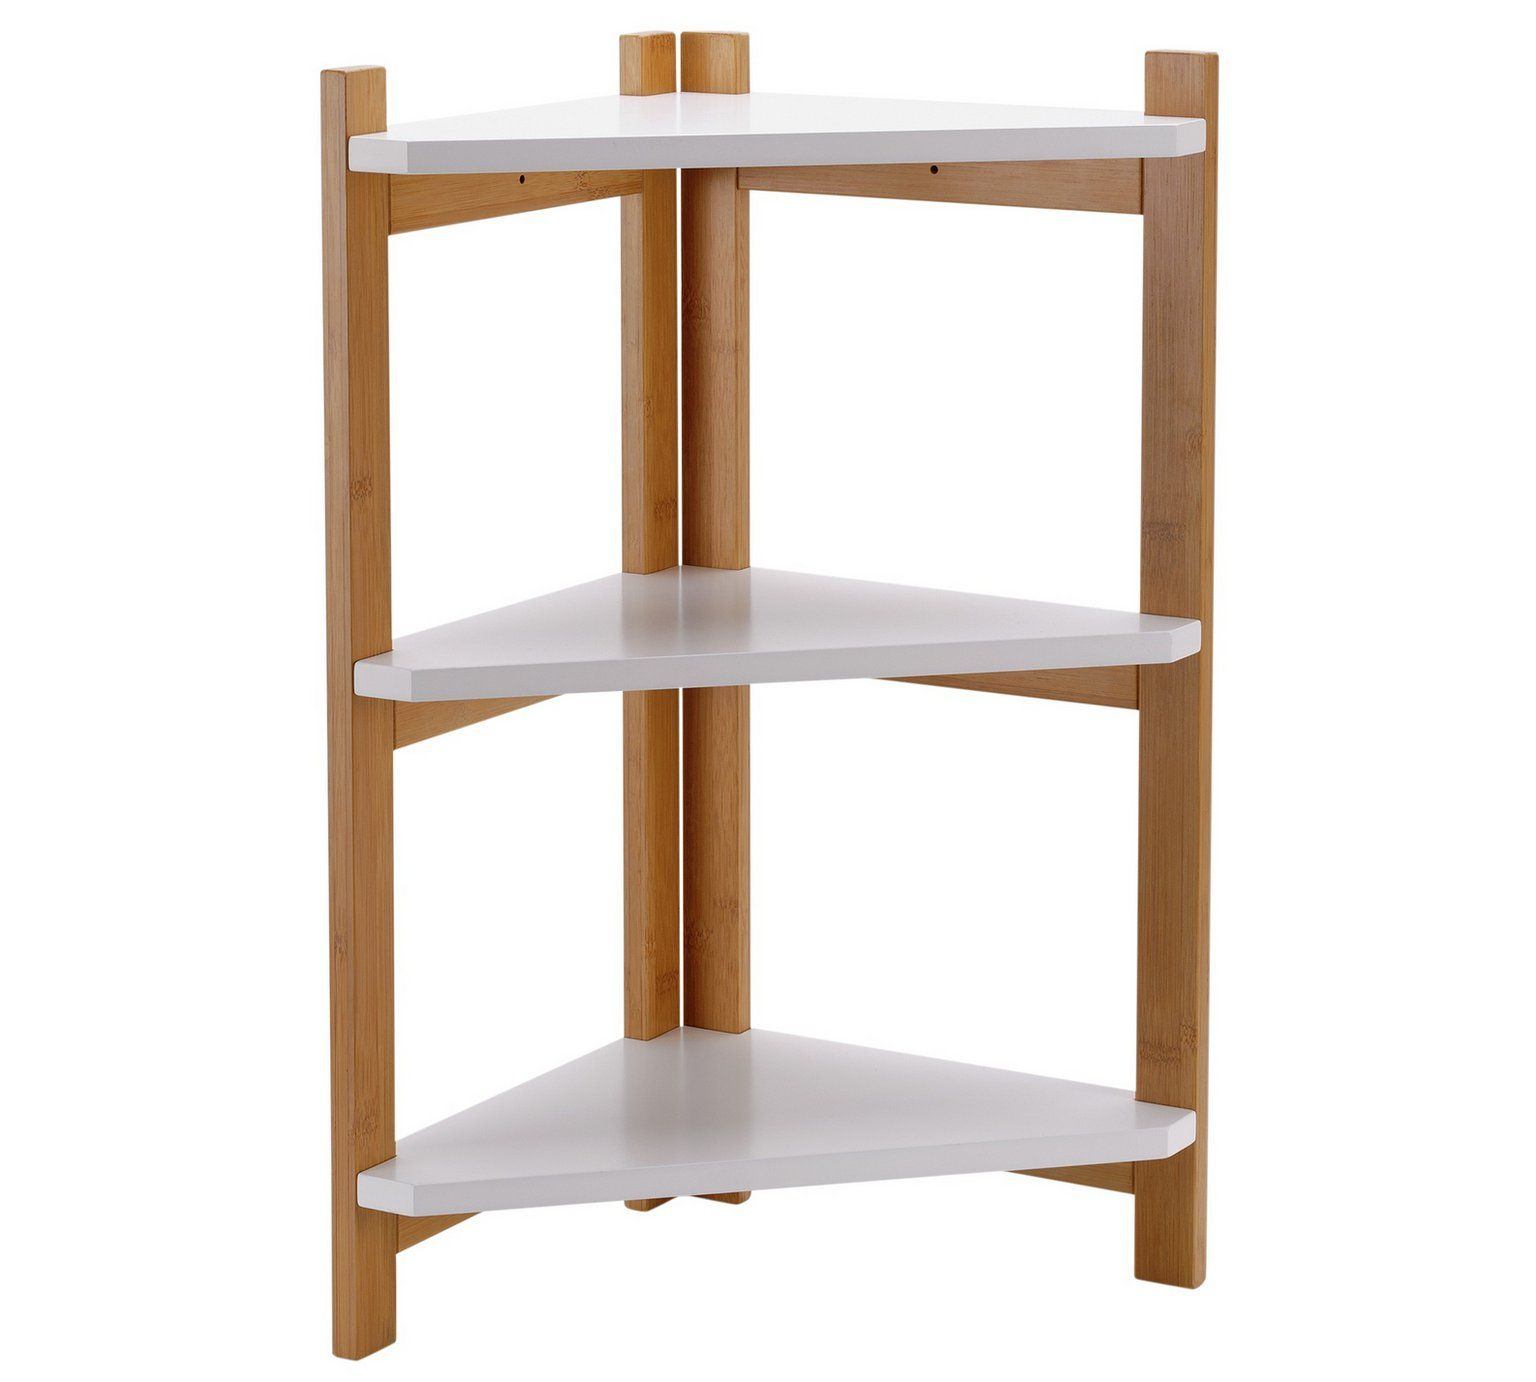 Buy Argos Home 3 Tier Bamboo Corner Shelf Unit Two Tone Limited Stock Home And Garden Argos Corner Shelves Shelves Corner Shelf Unit